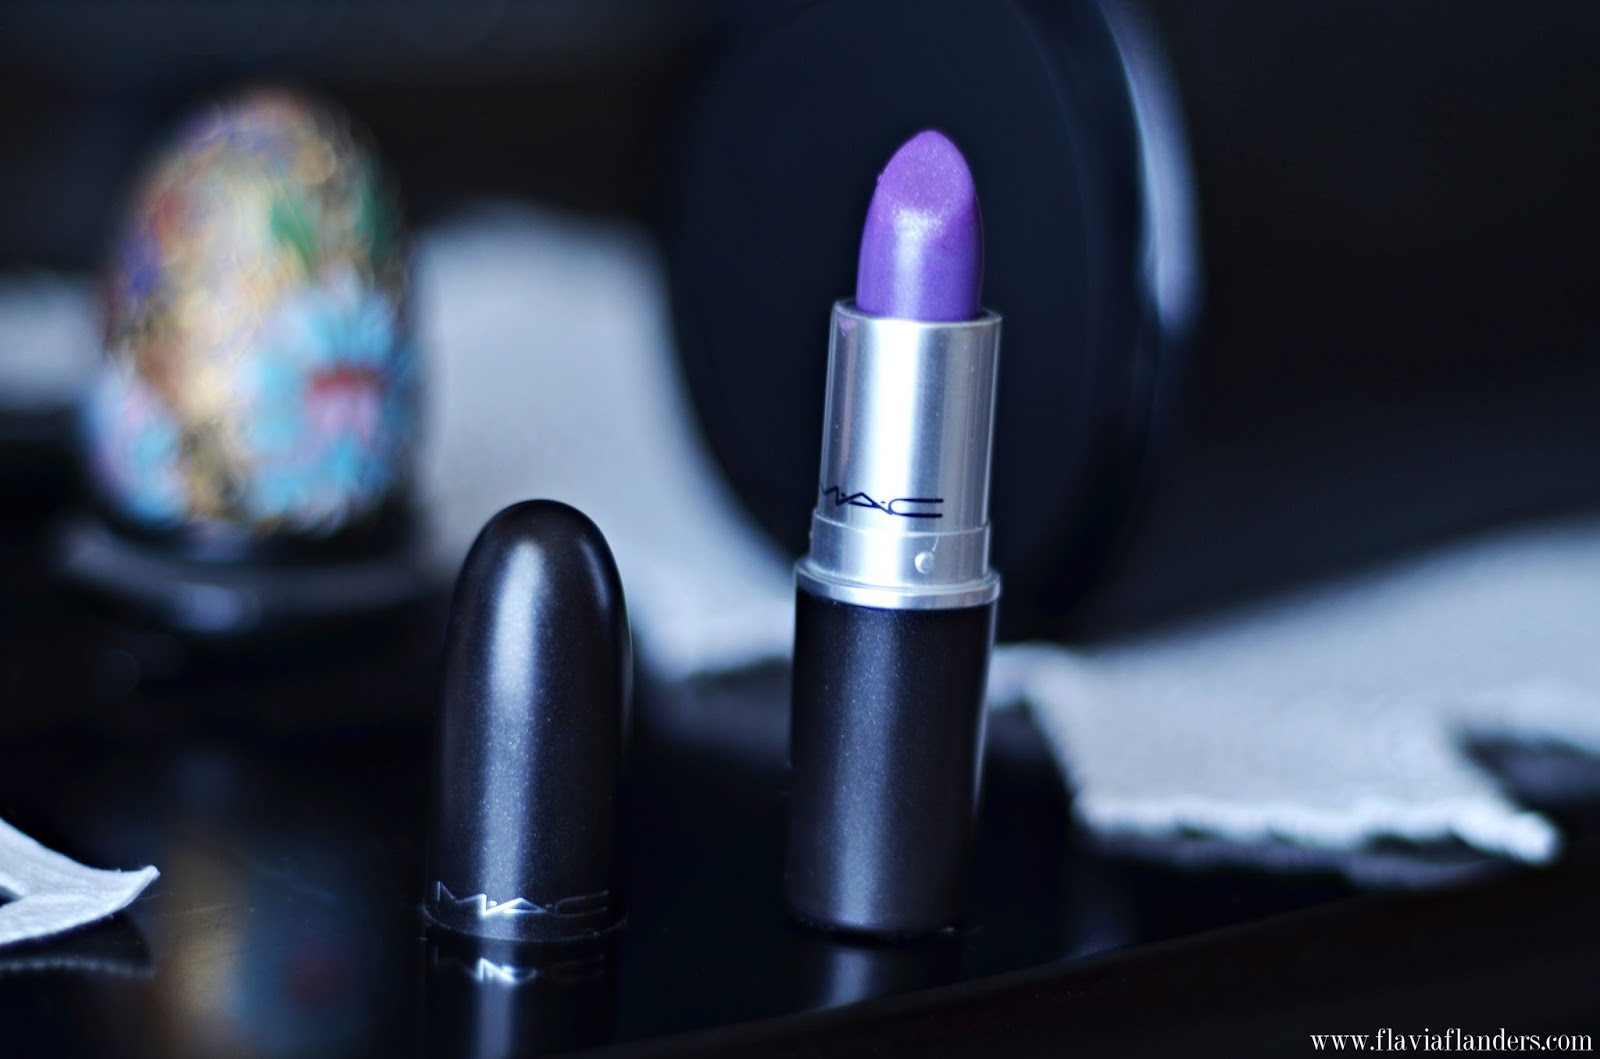 mac in the groove collection, go for it, mac cosmetics, mac argentina, mac cosmetics argentina, go for it lipstick, mac go for it